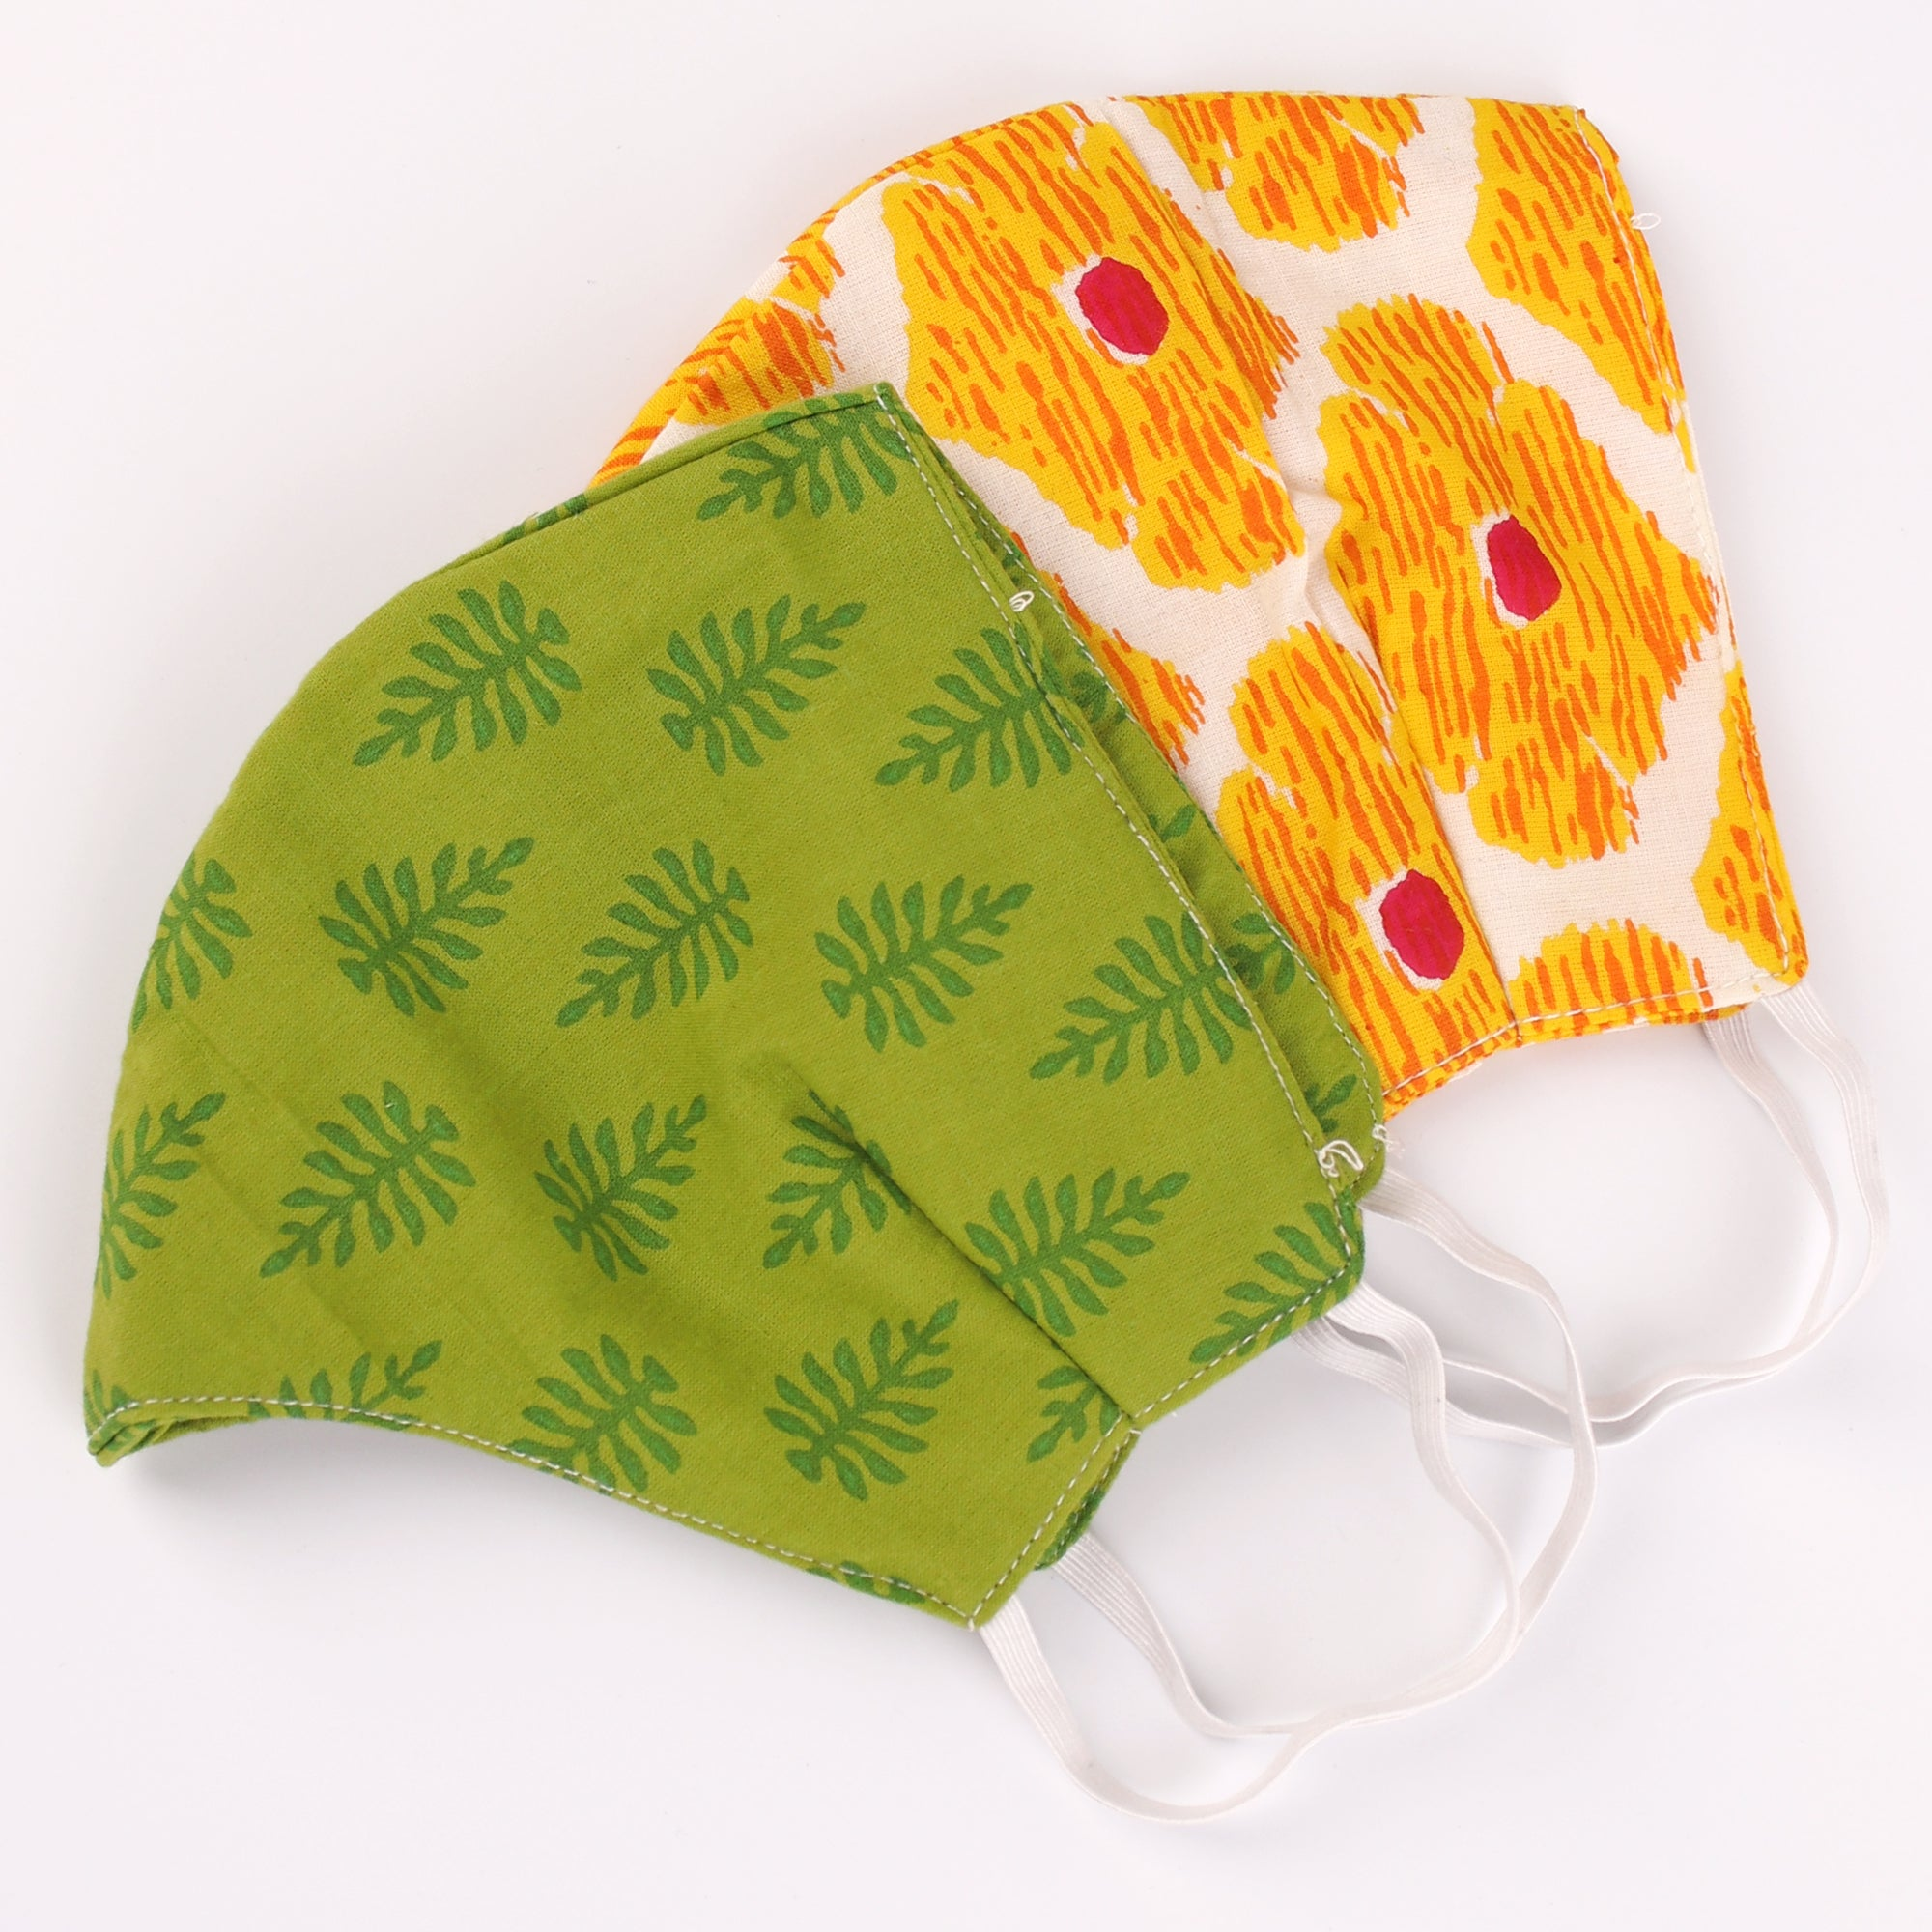 The Fern Face Mask and the Sunny Face Mask- Set of 2